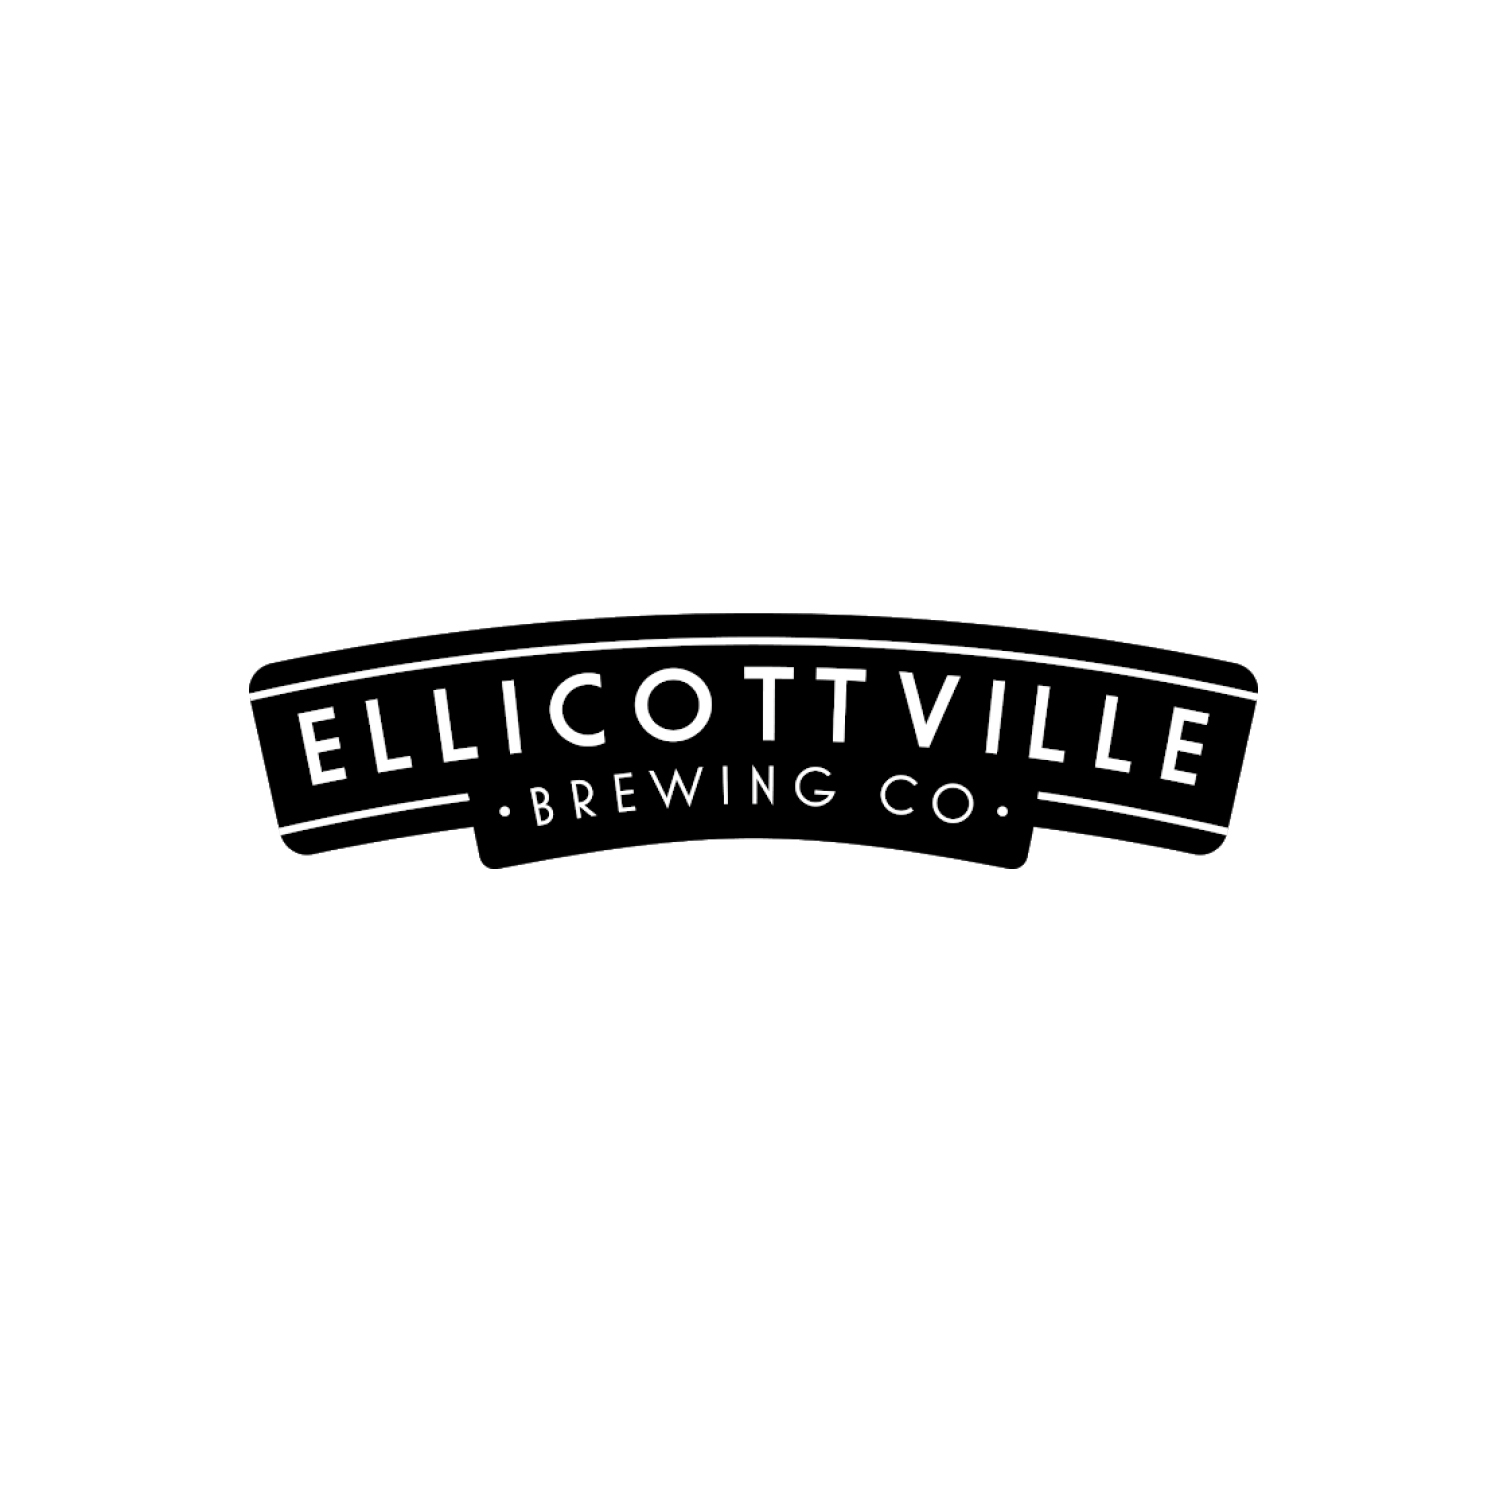 Ellicottville Brewing Co